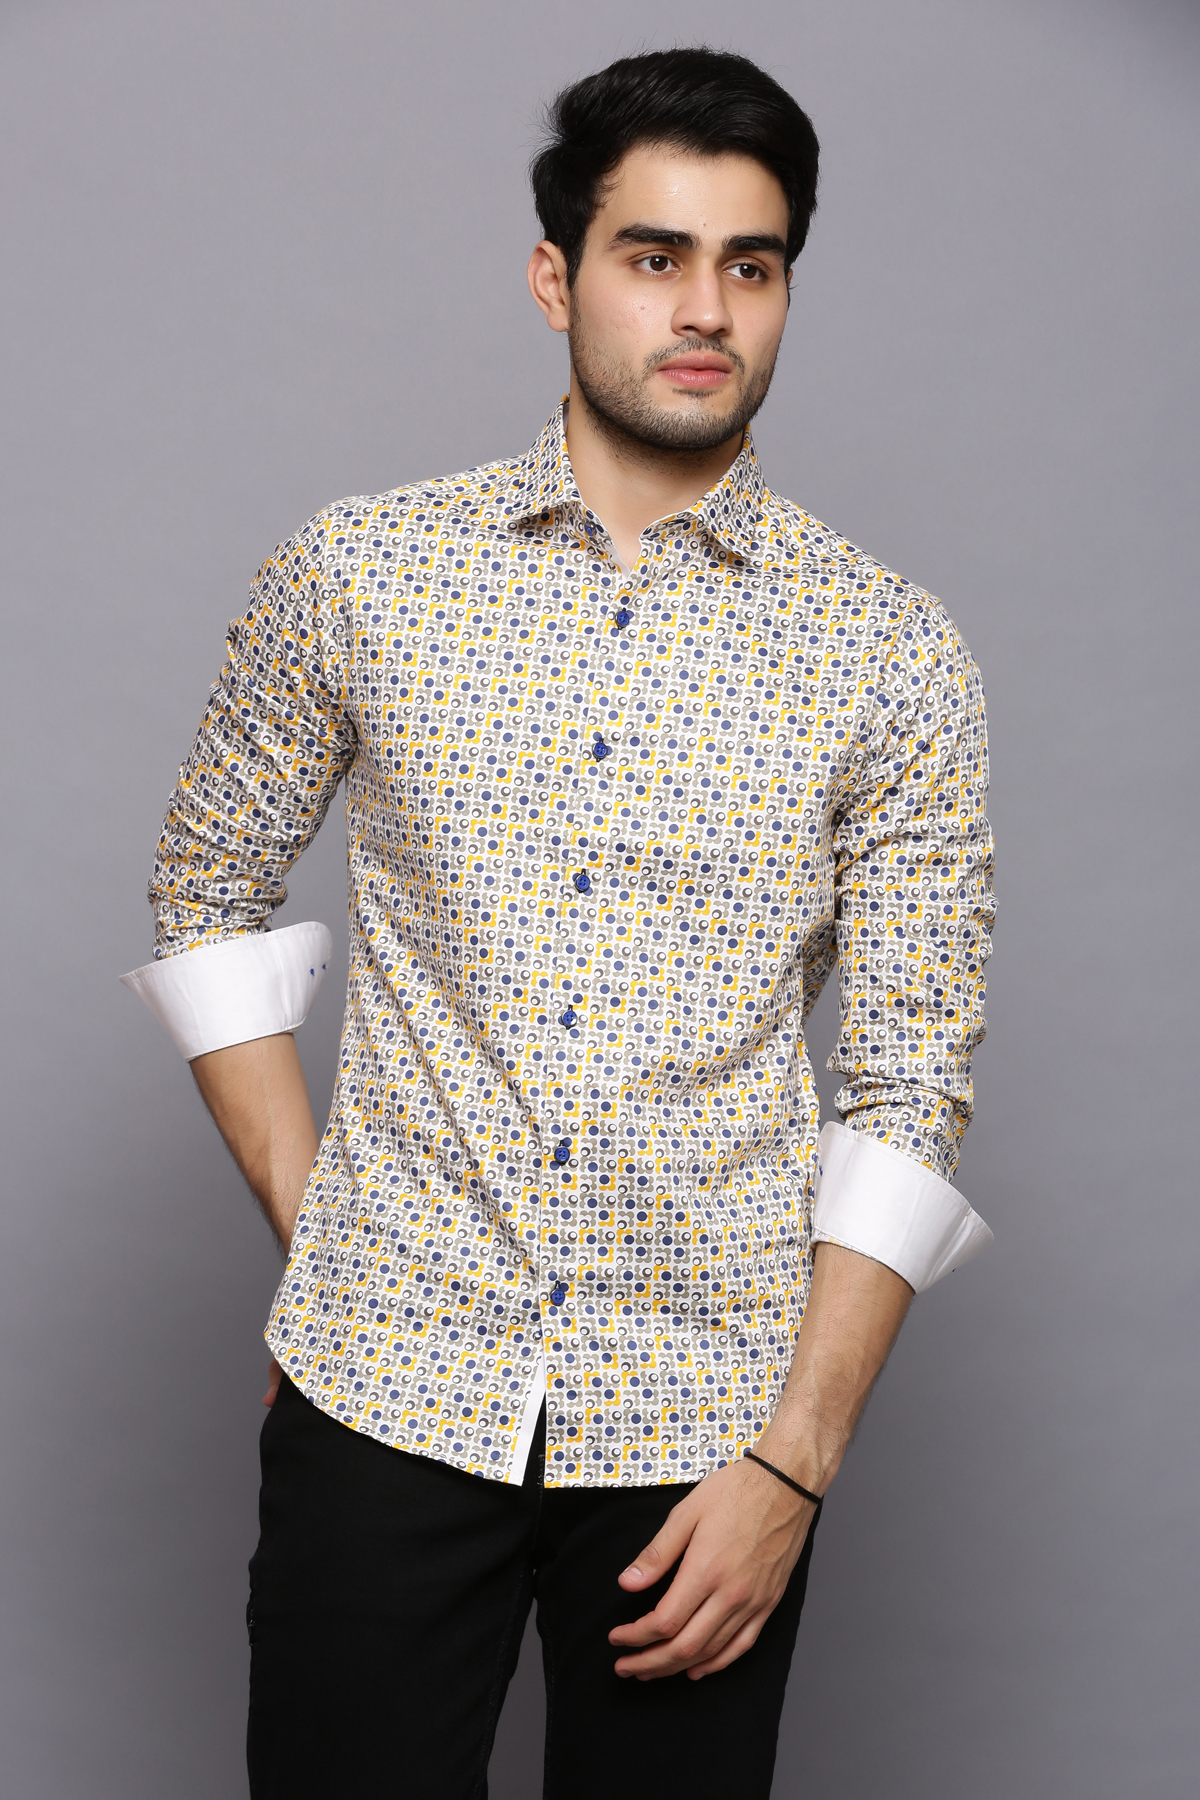 Dot Dot yellow shirt